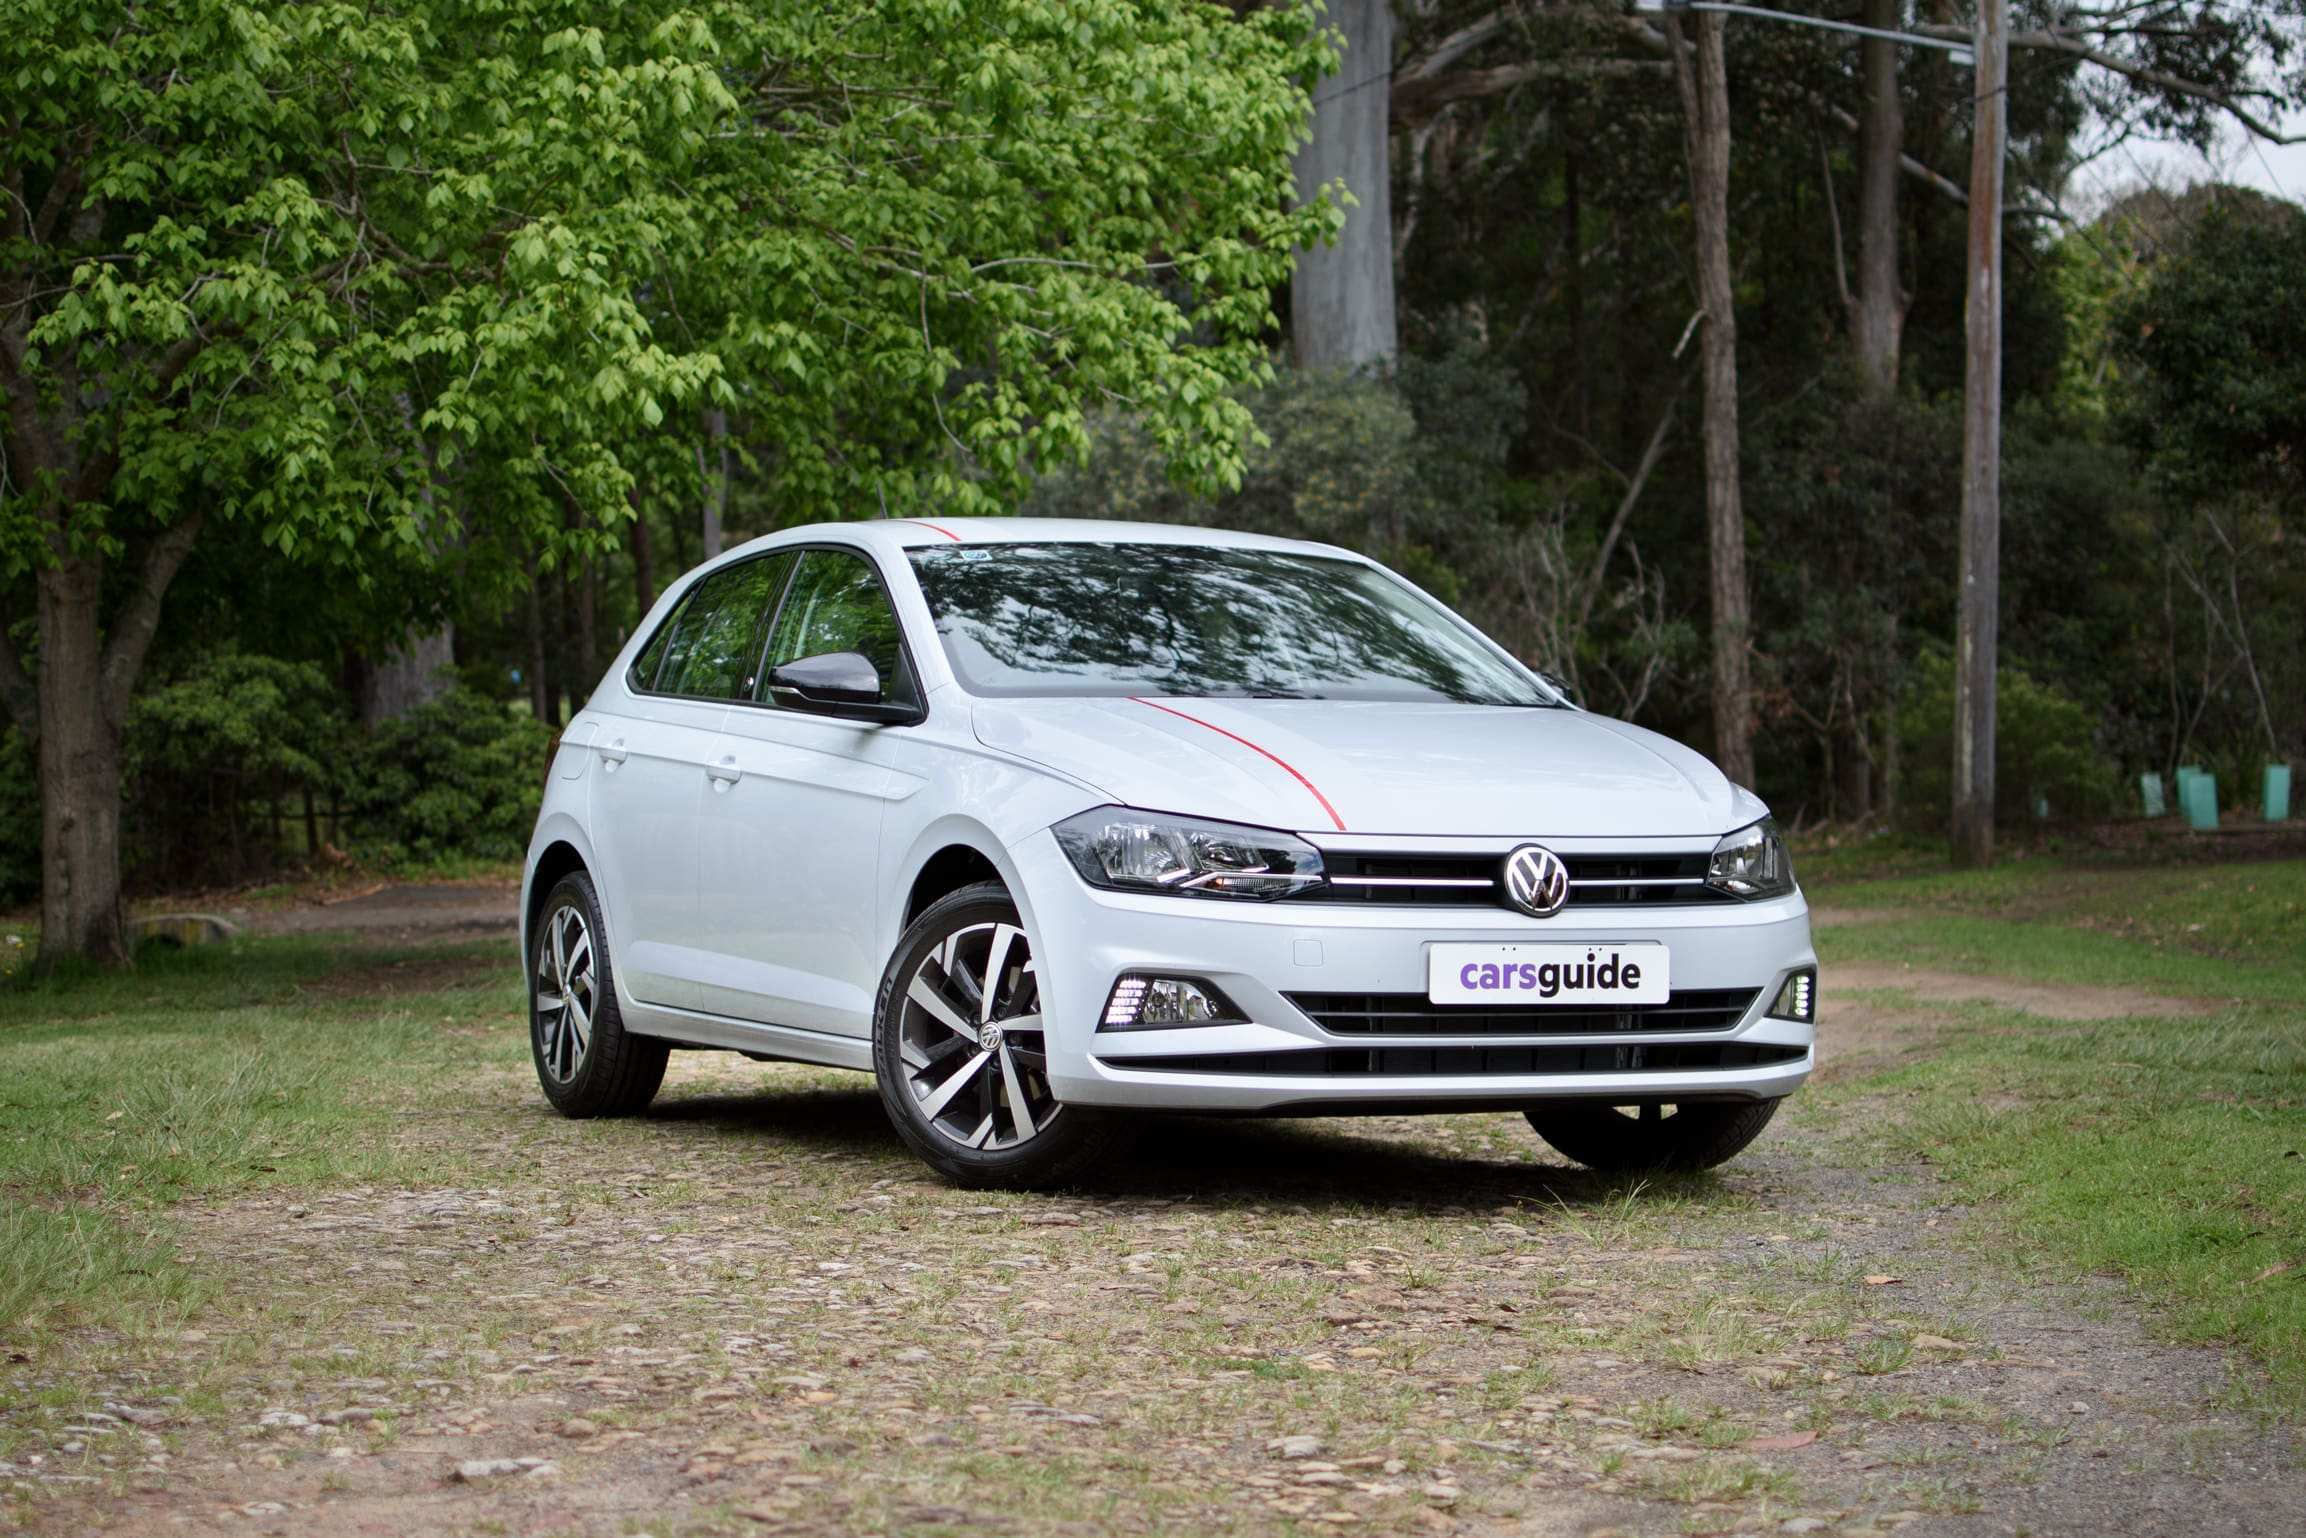 30 New 2019 Volkswagen Polos Prices